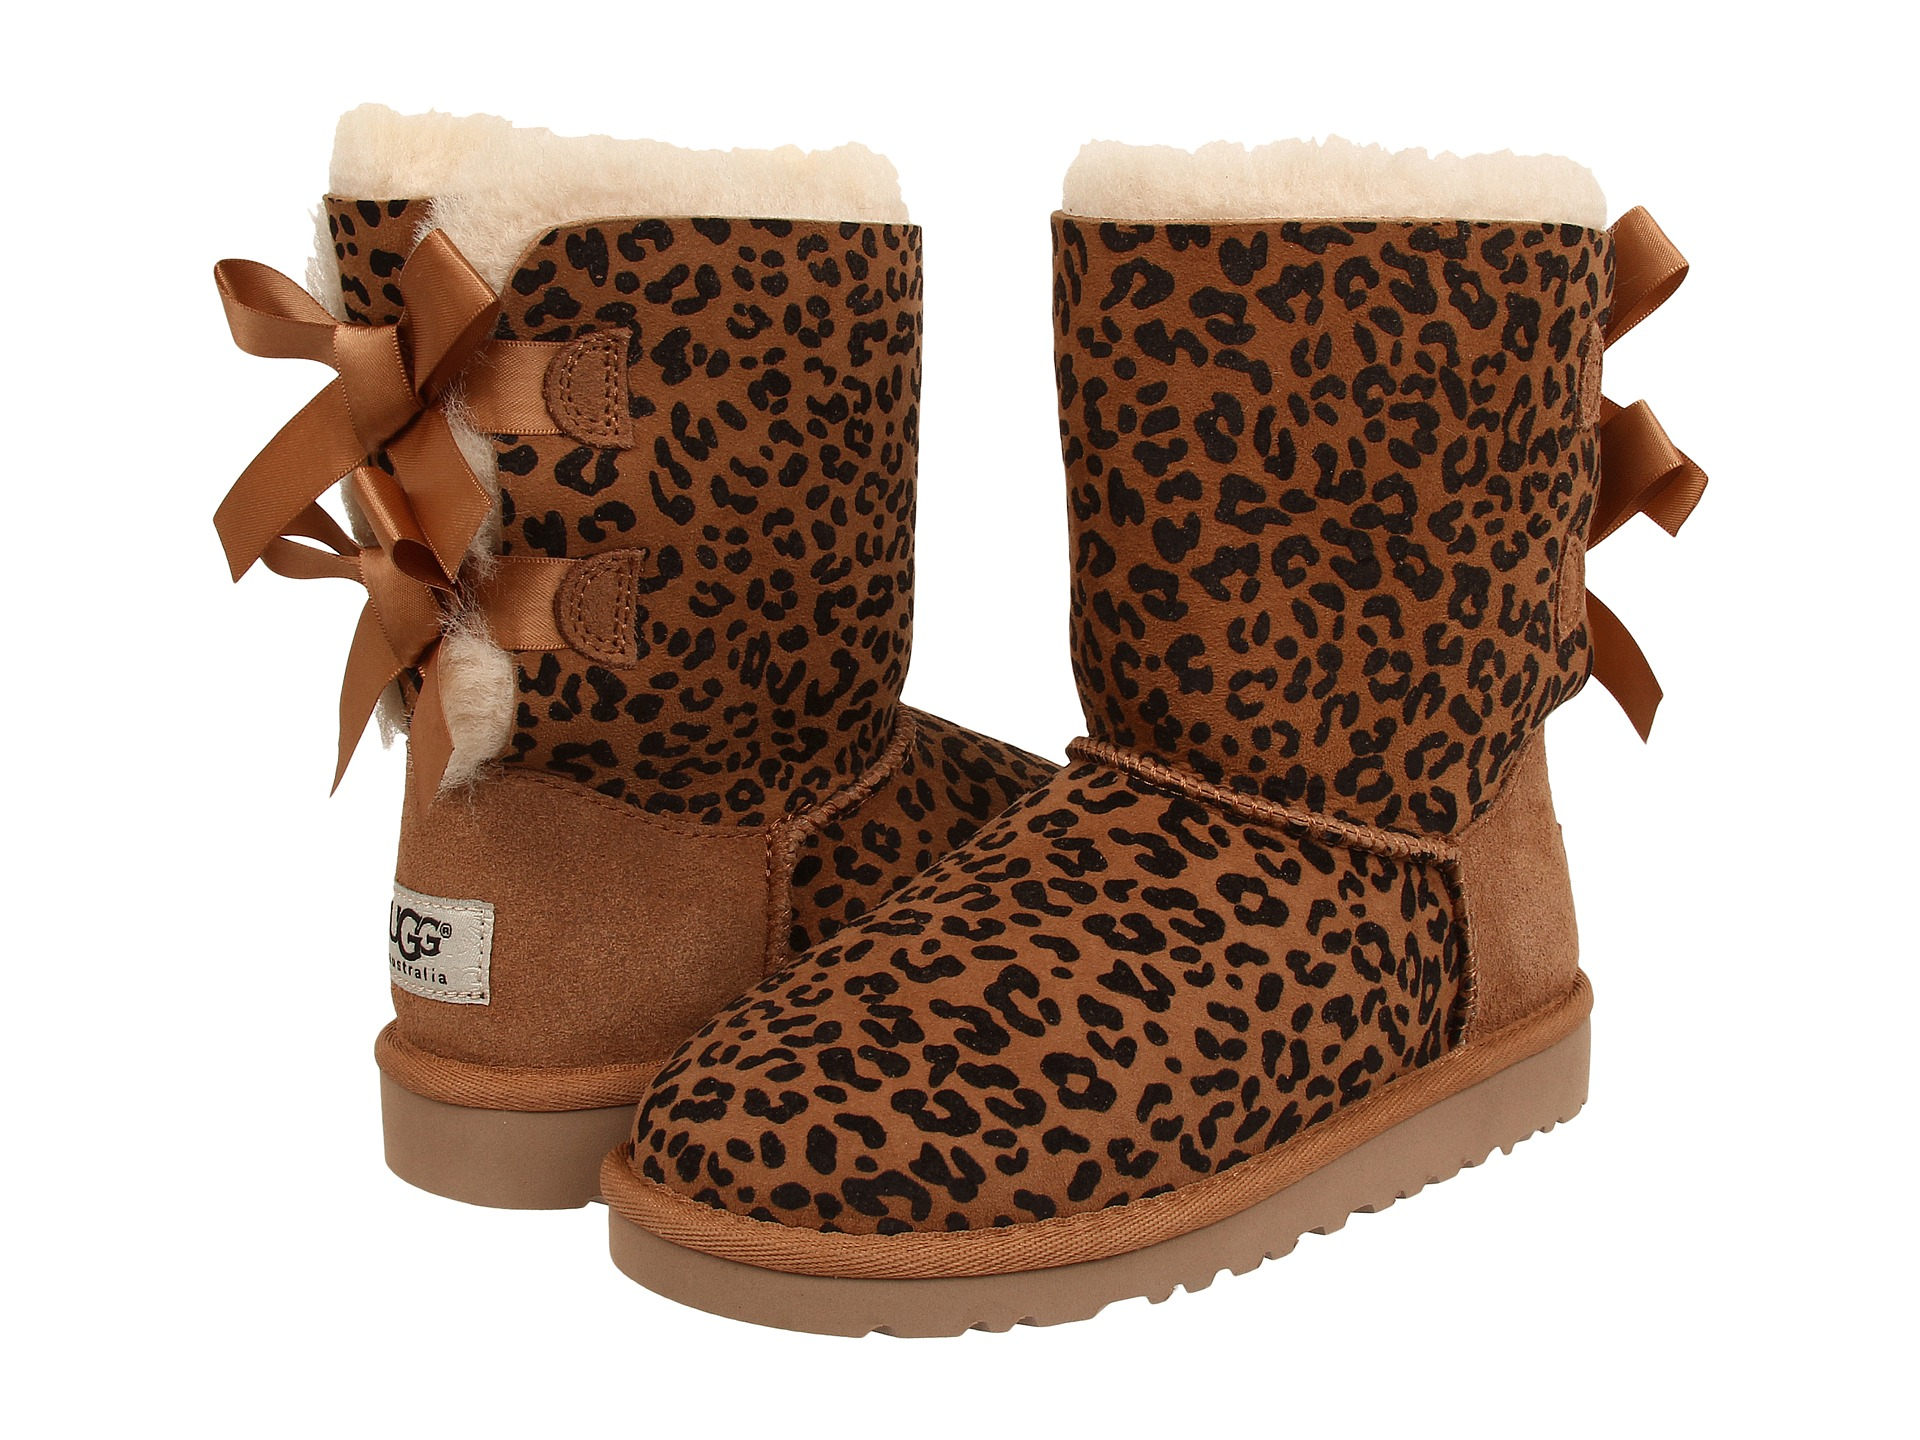 Ugg Boots With Cheetah Print Bows Image And Photo Beertology